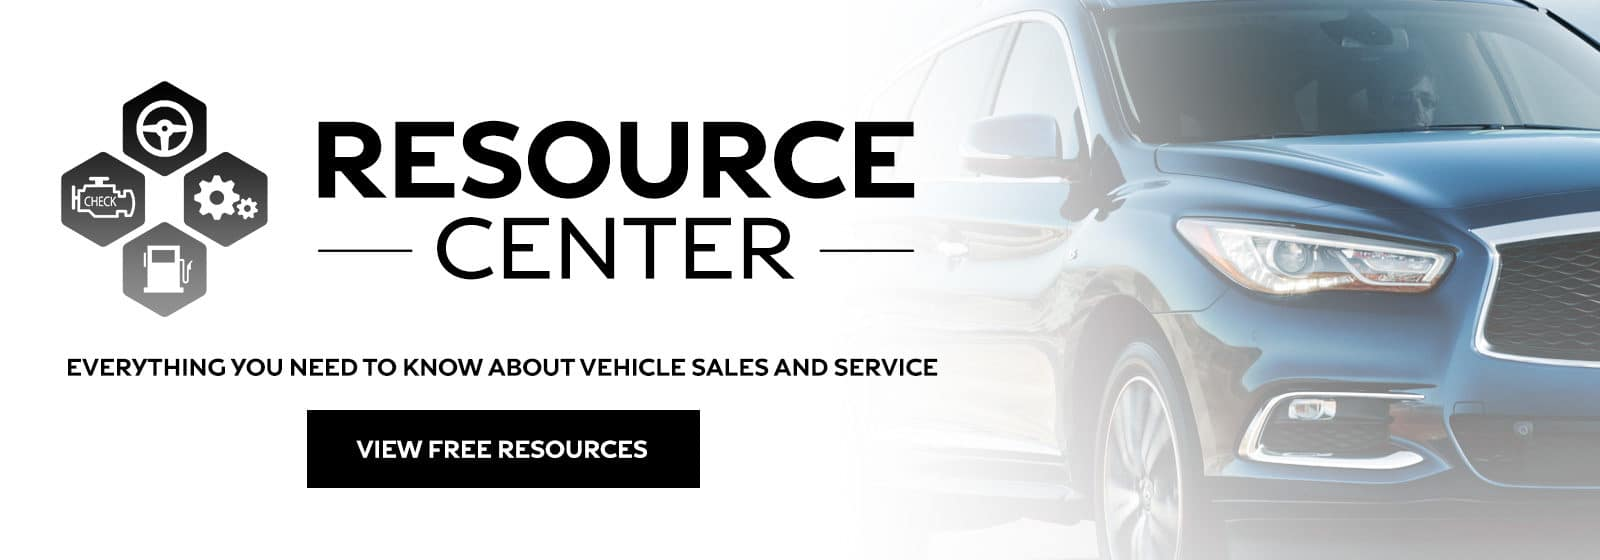 Resource Center - Everything you need to know about vehicle sales and service - View free resources